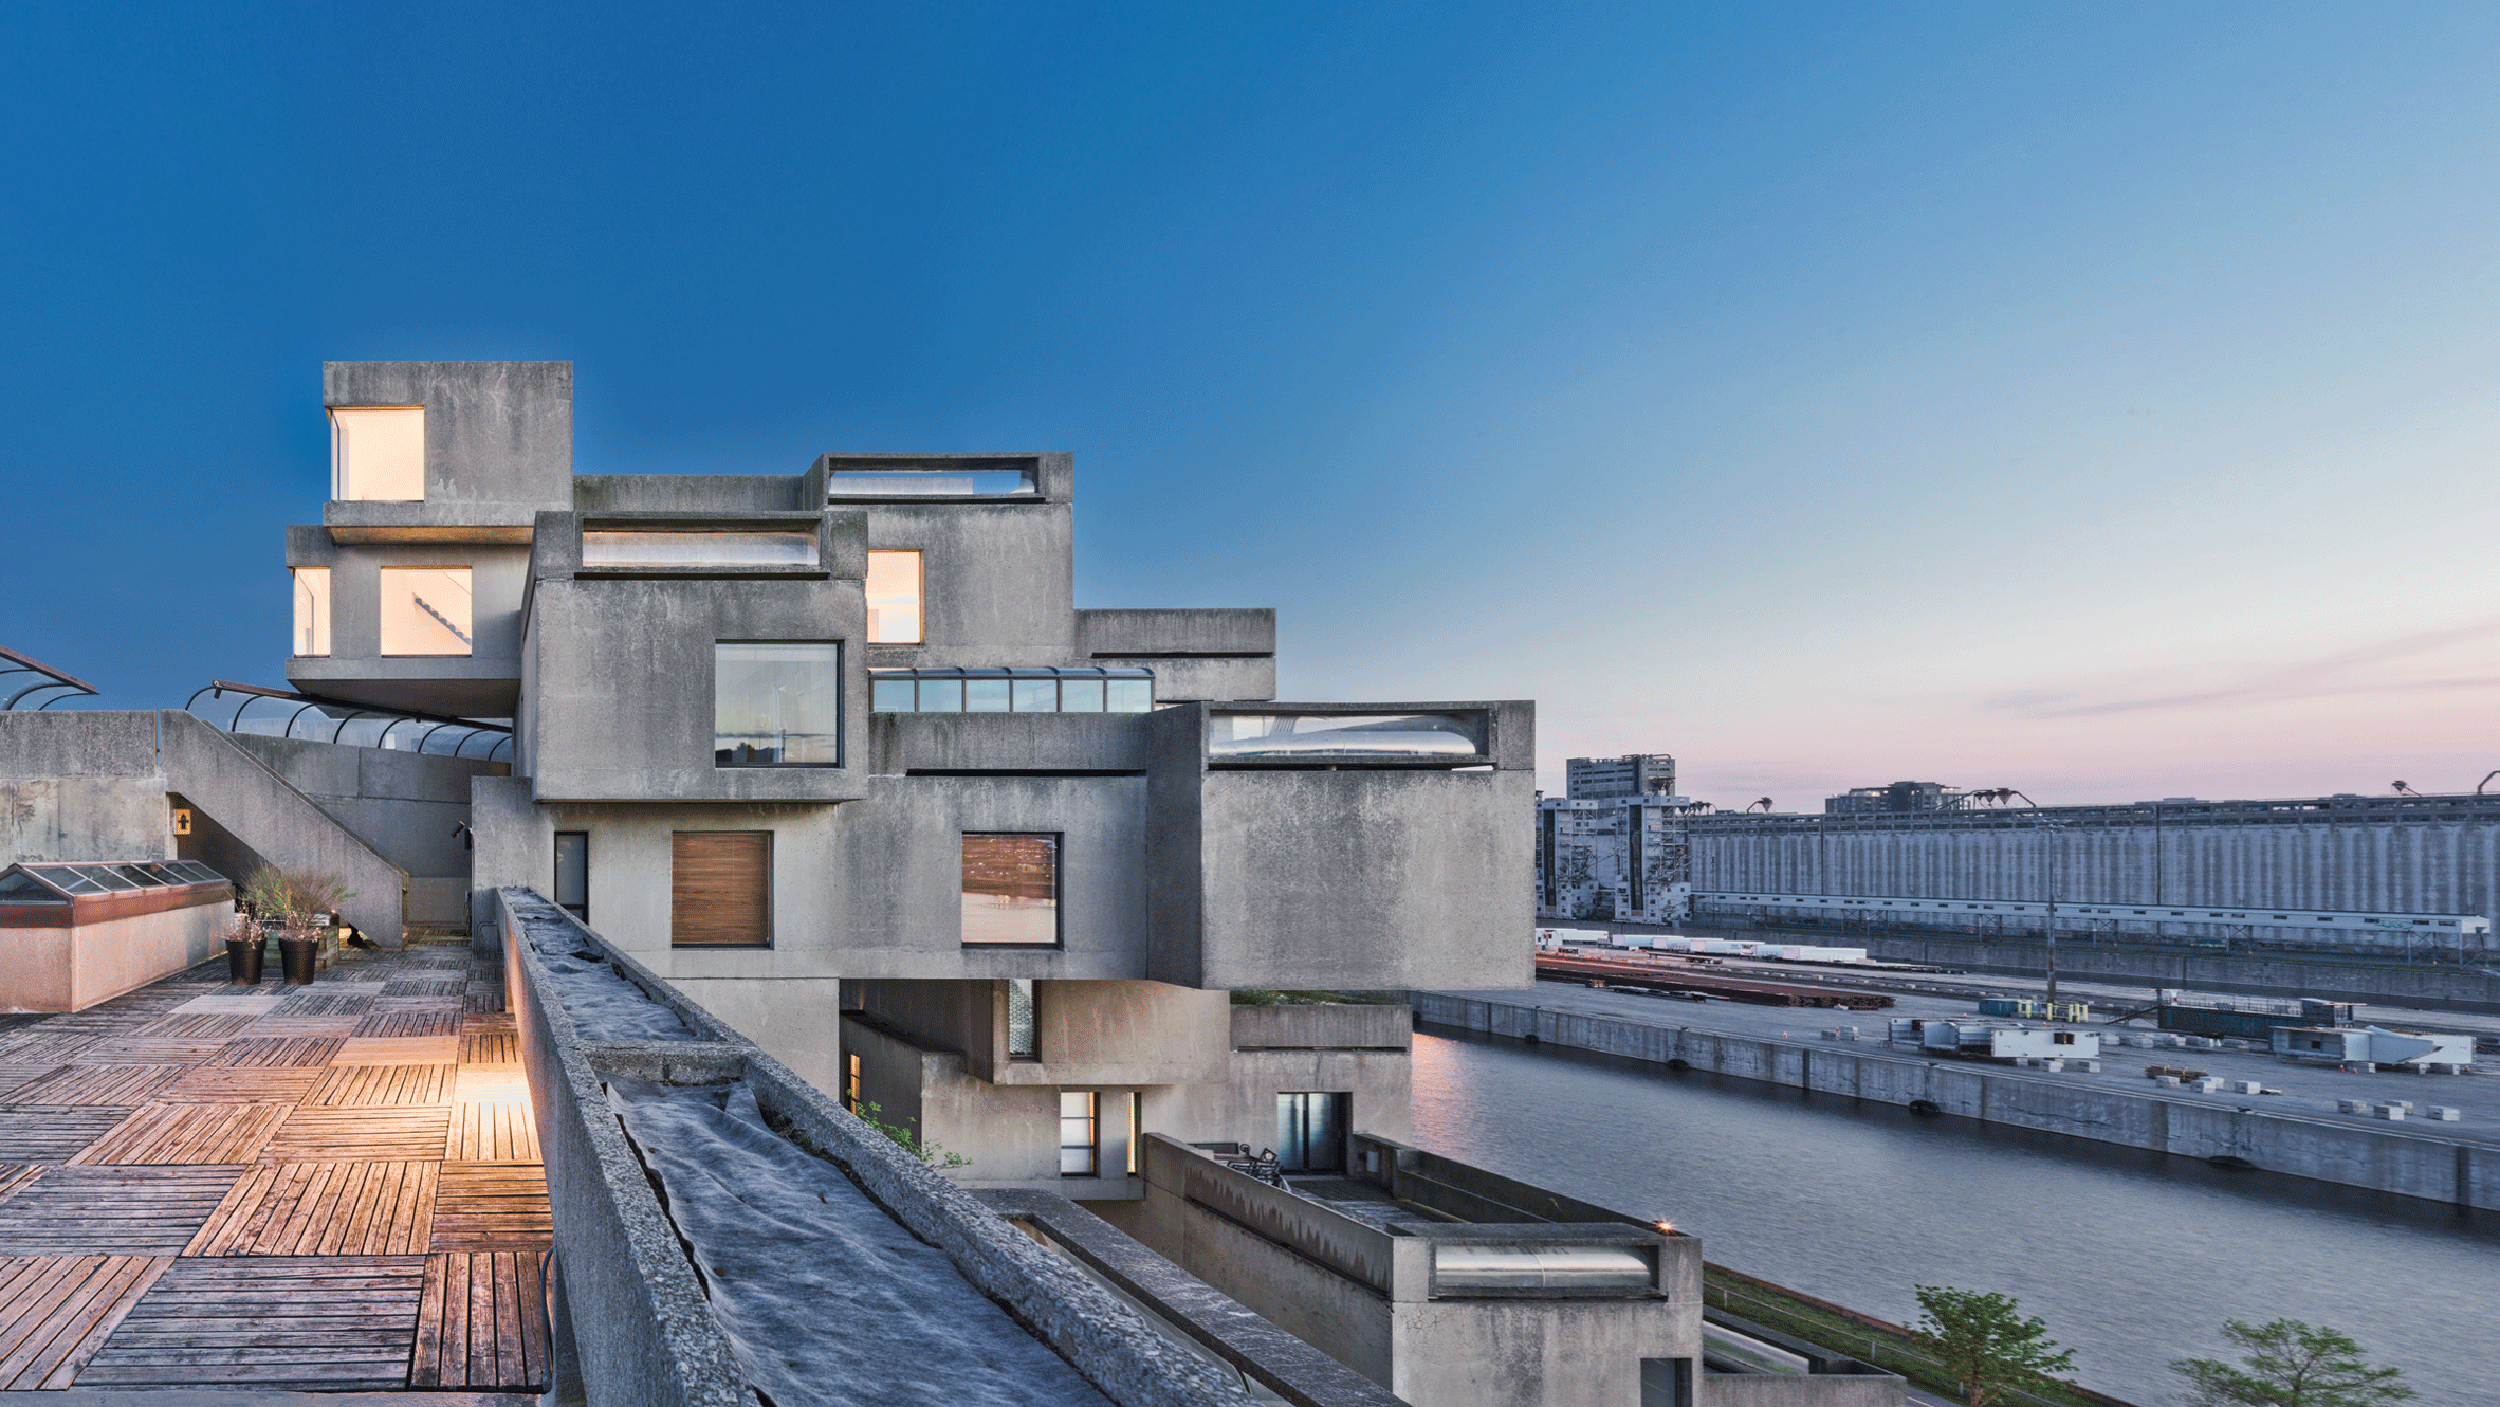 Moshe Safdie's Private Residence at Habitat 67 Opens to